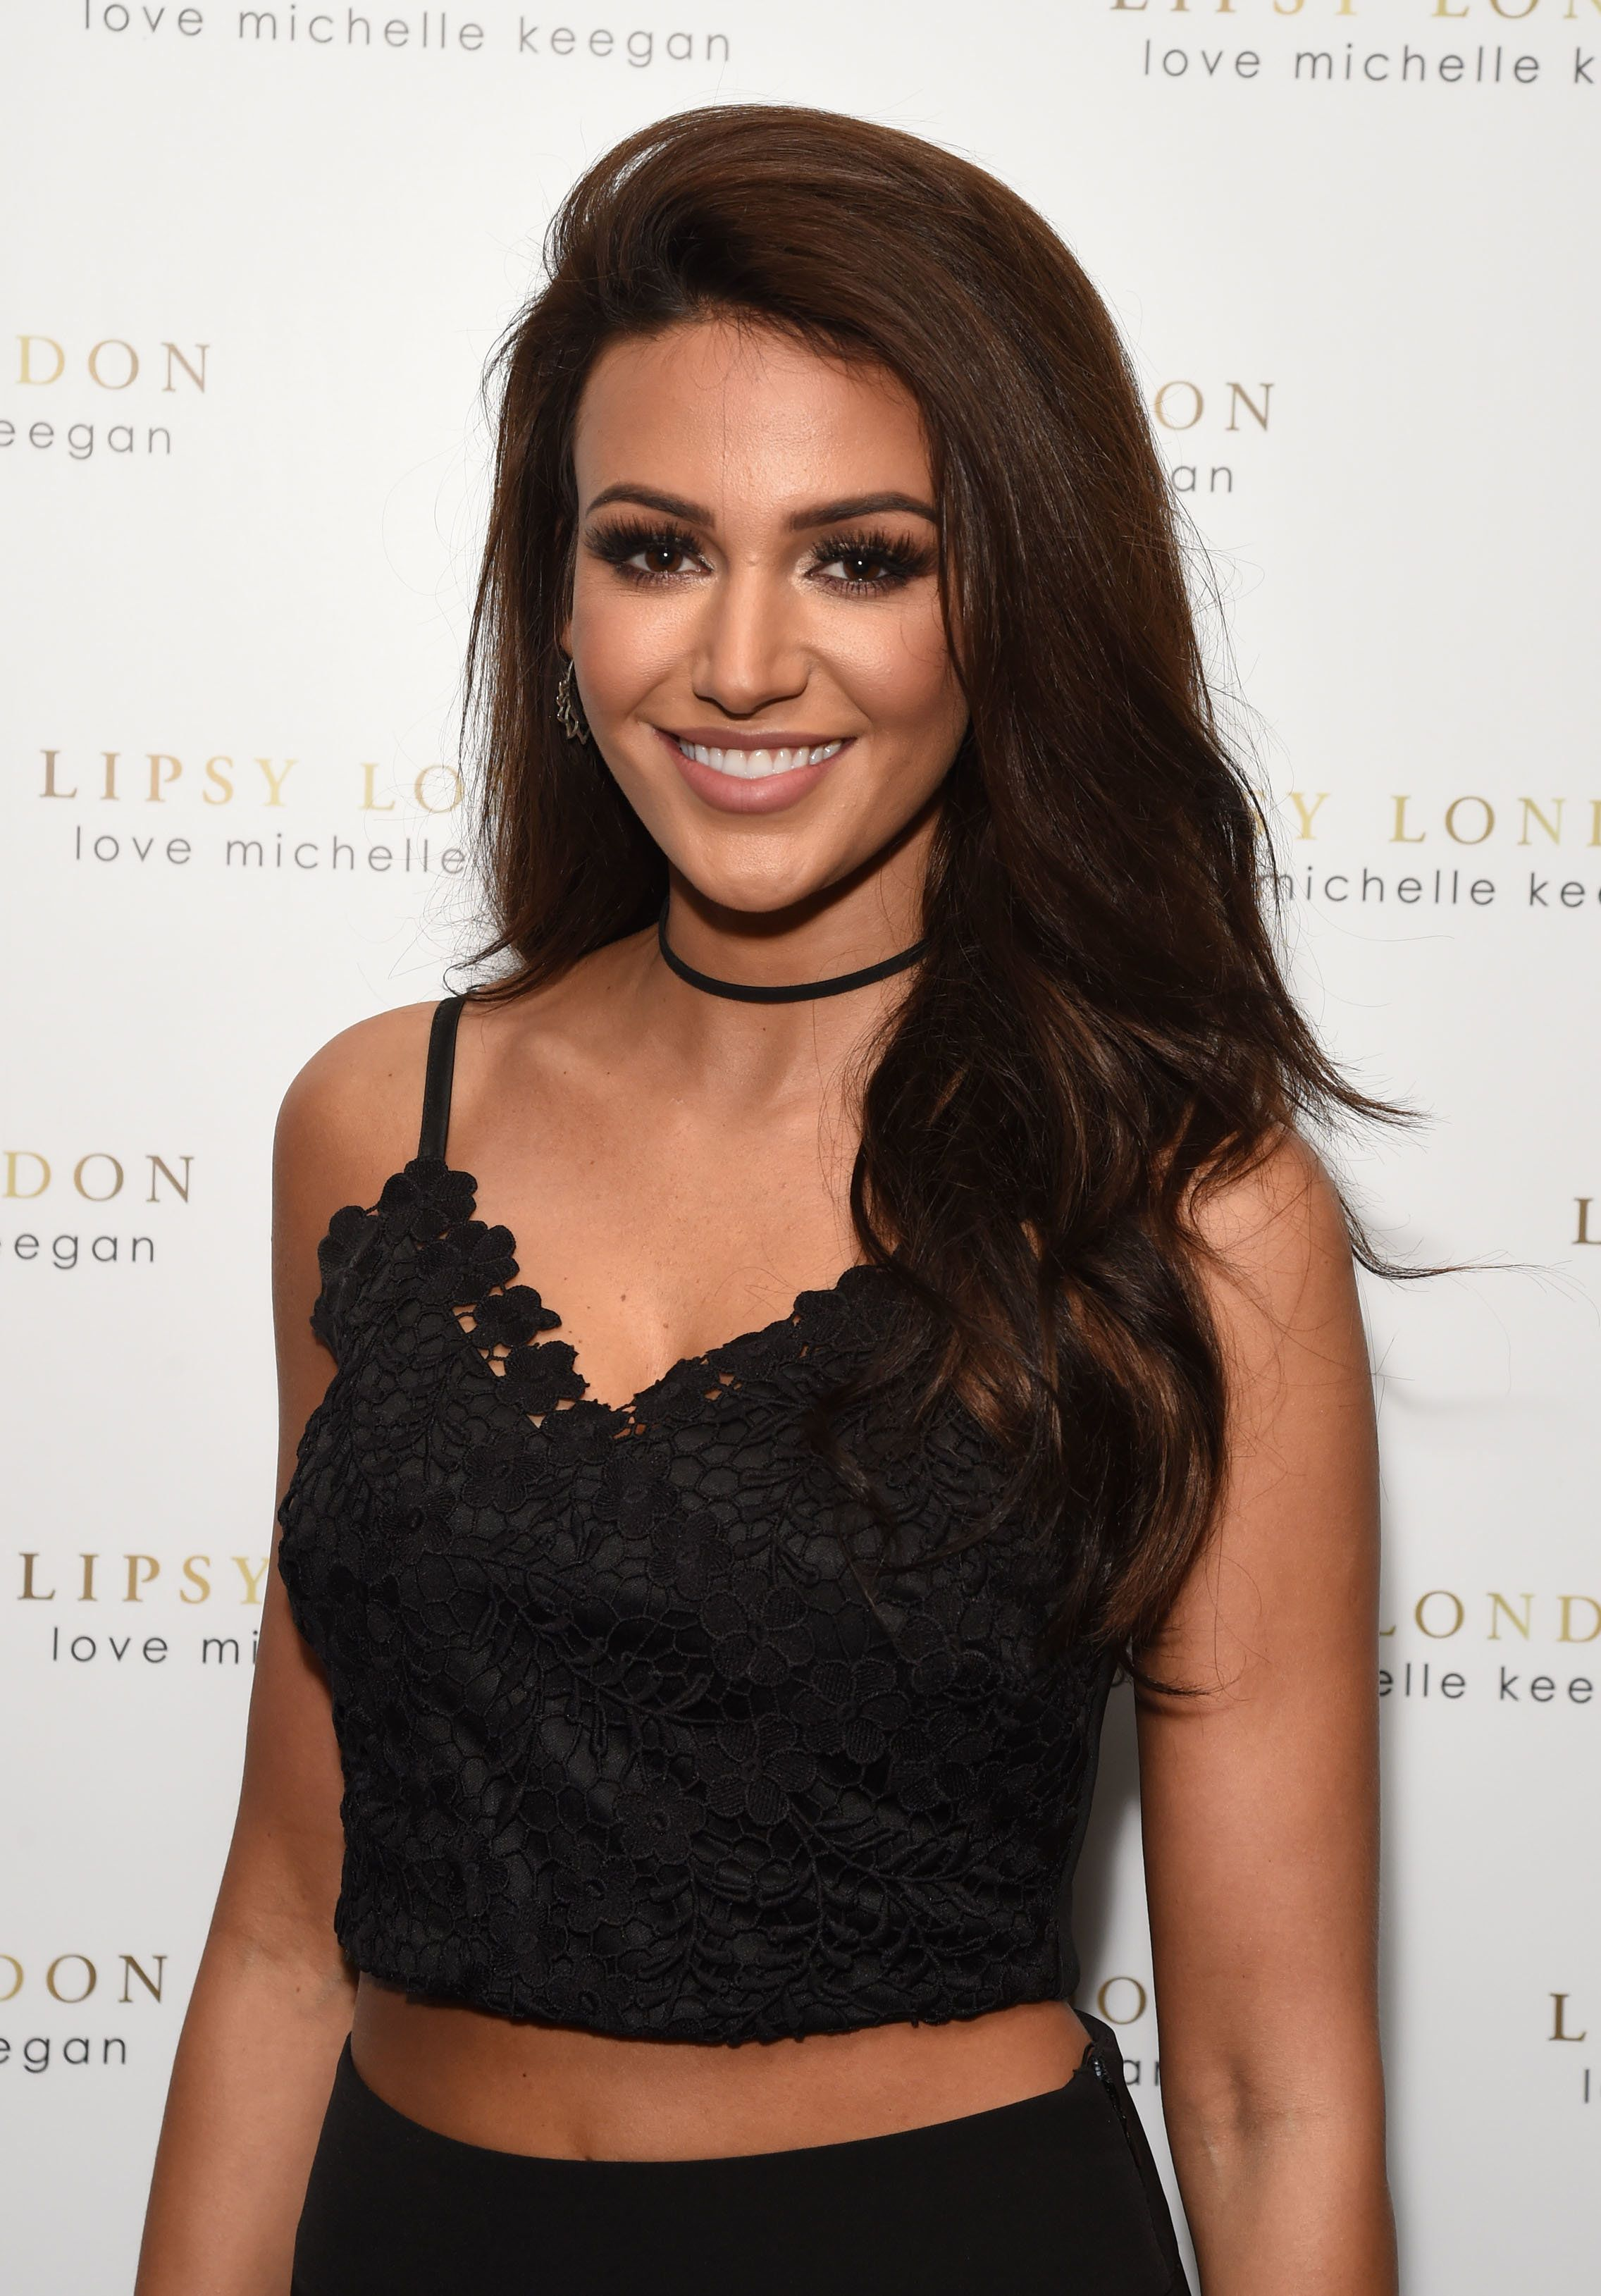 Michelle Keegan Signs Up For New 'Crystal